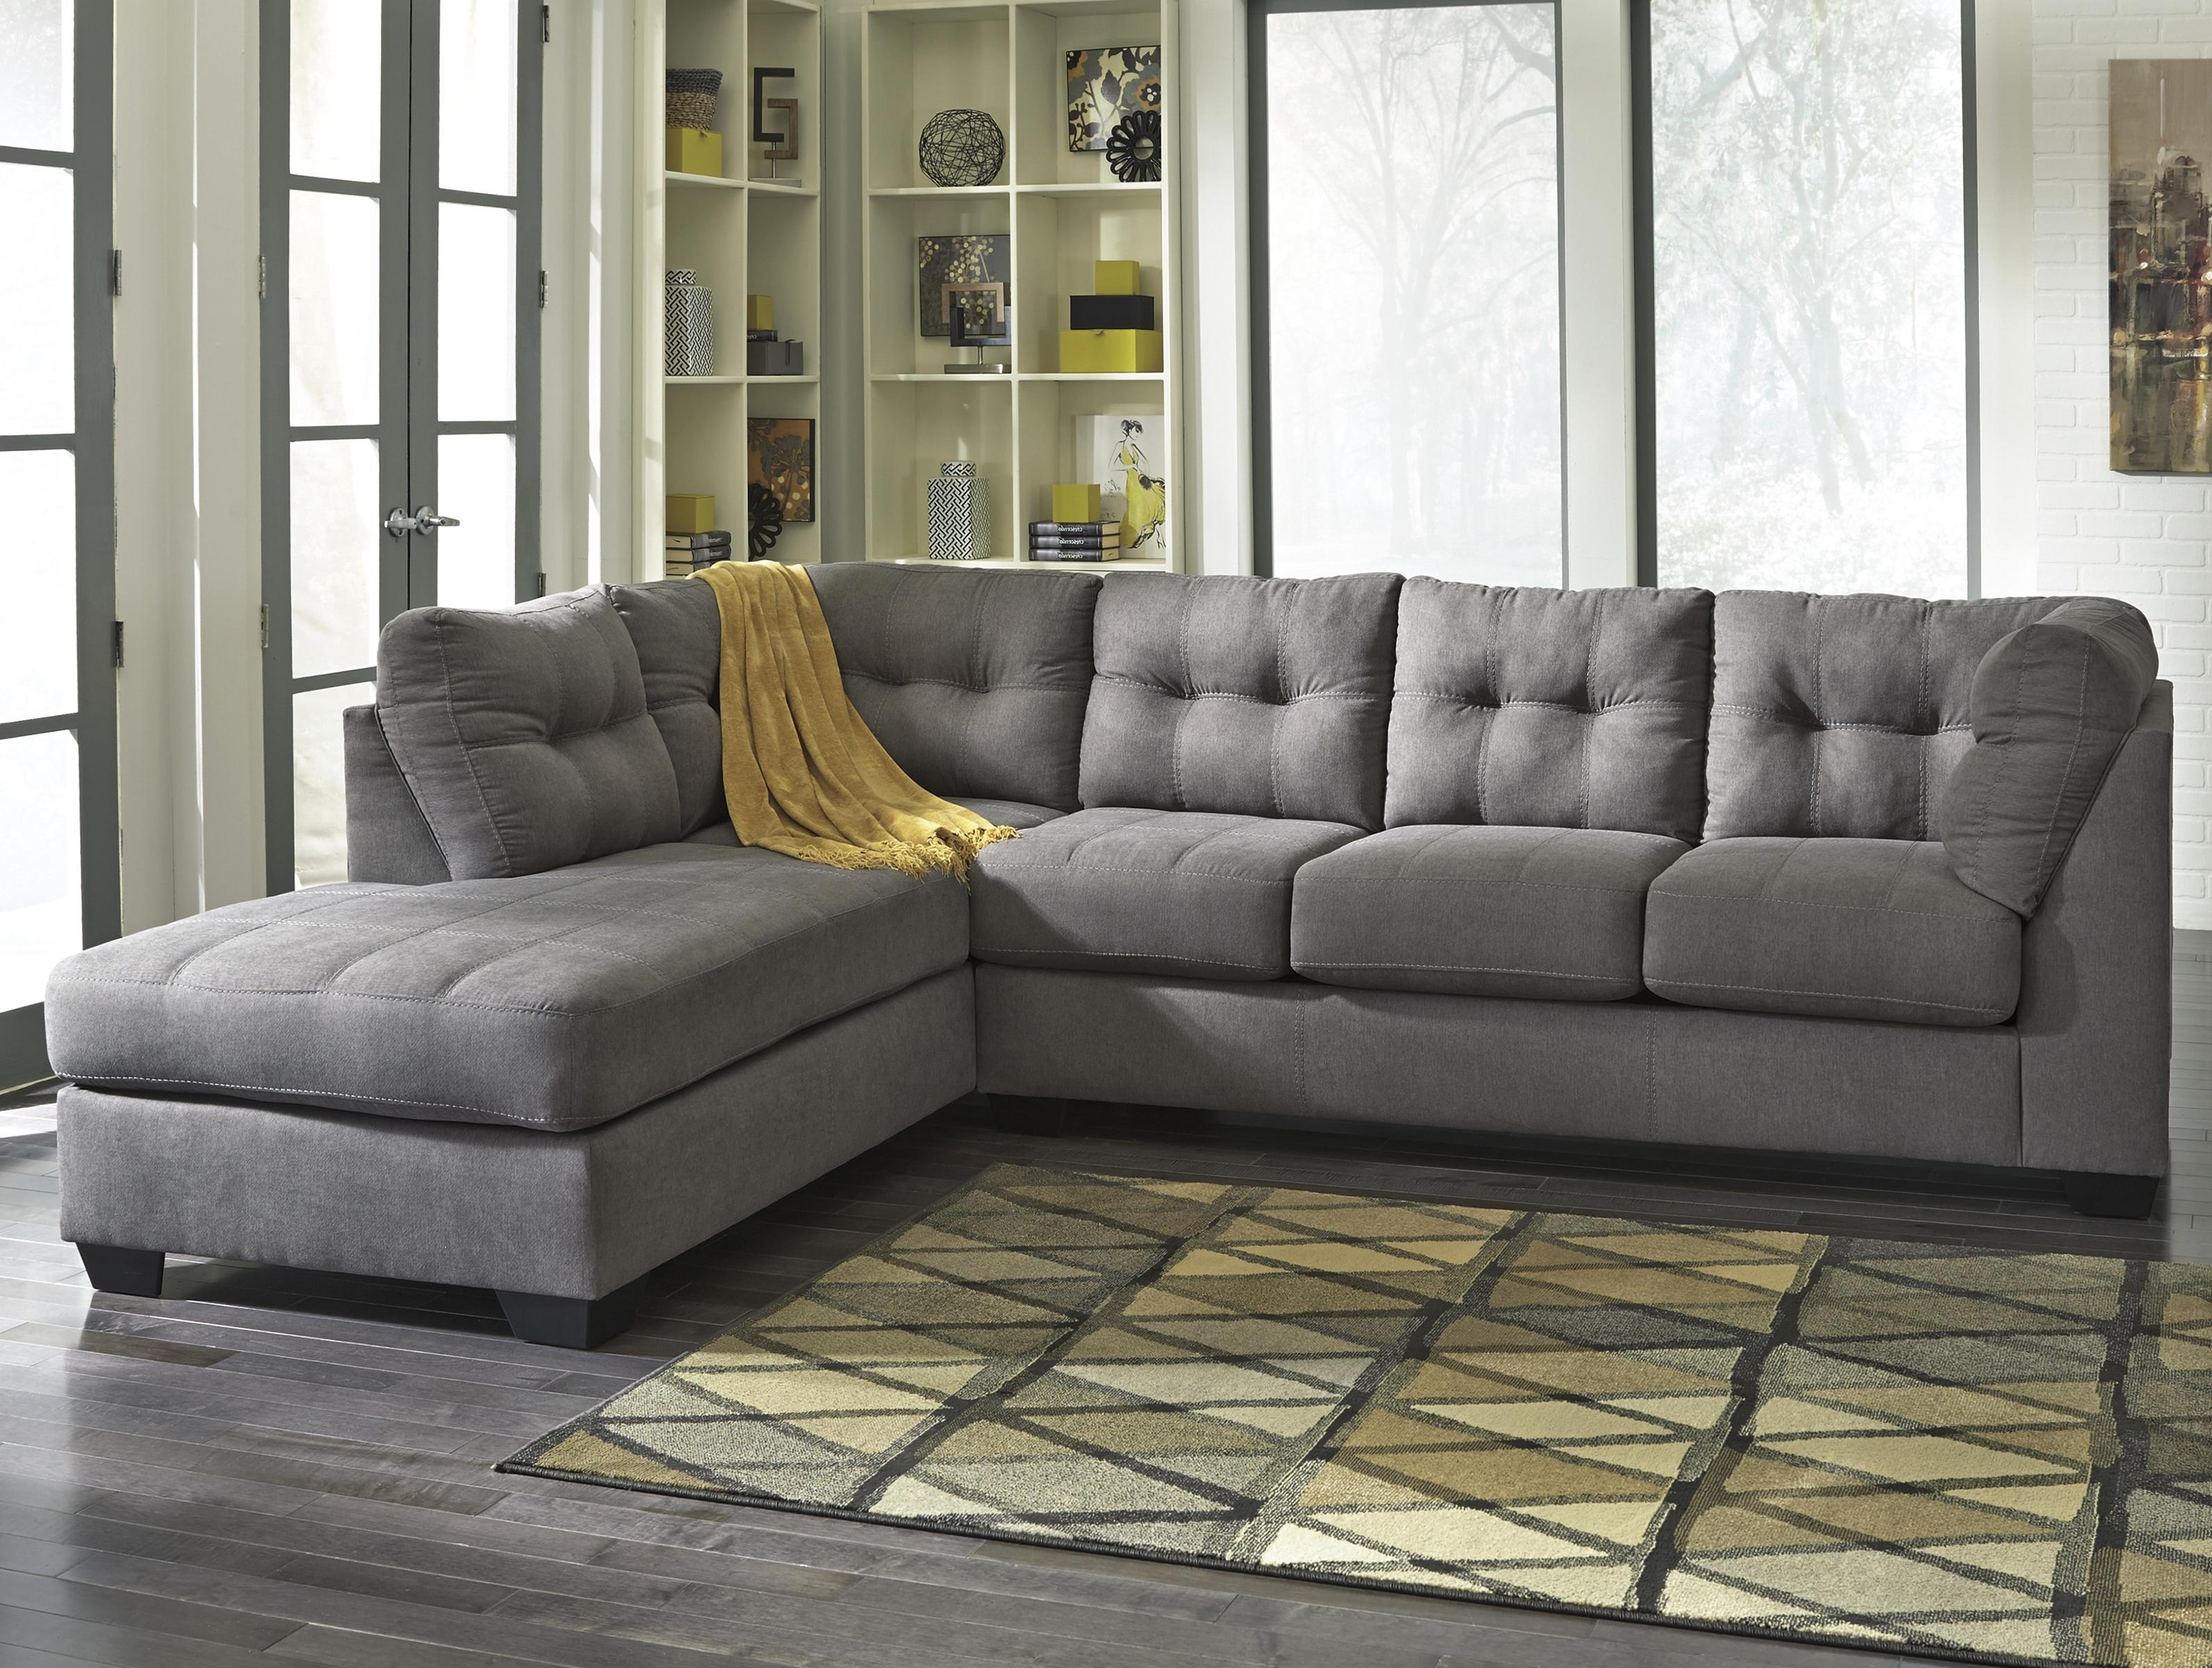 Choosing 2 Piece Sectional Sofa - Elites Home Decor with Delano 2 Piece Sectionals With Raf Oversized Chaise (Image 11 of 30)